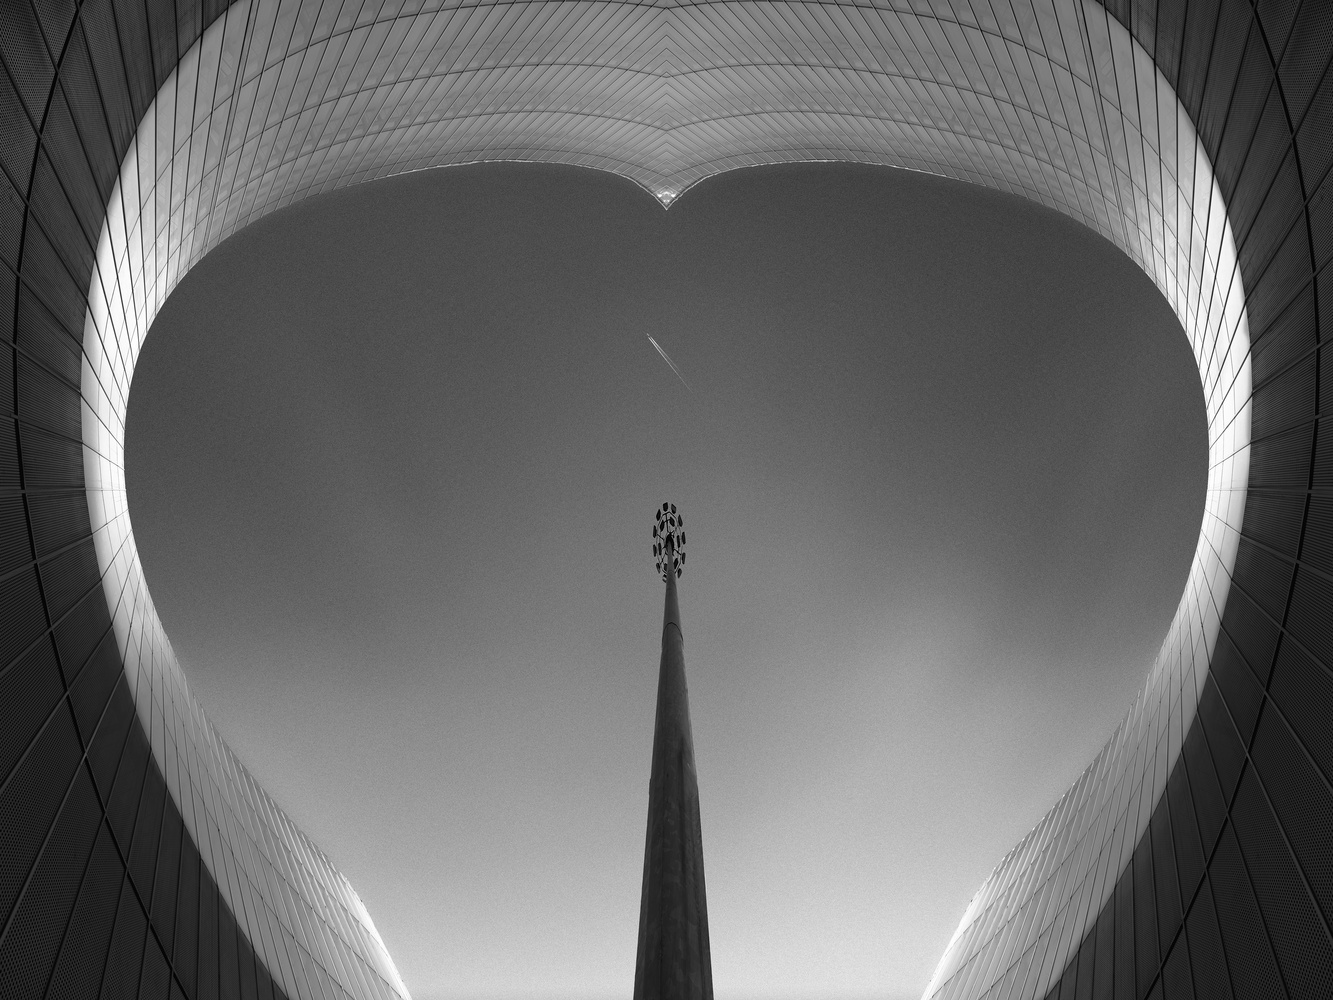 Love Architecture by Amirhossein Naghian